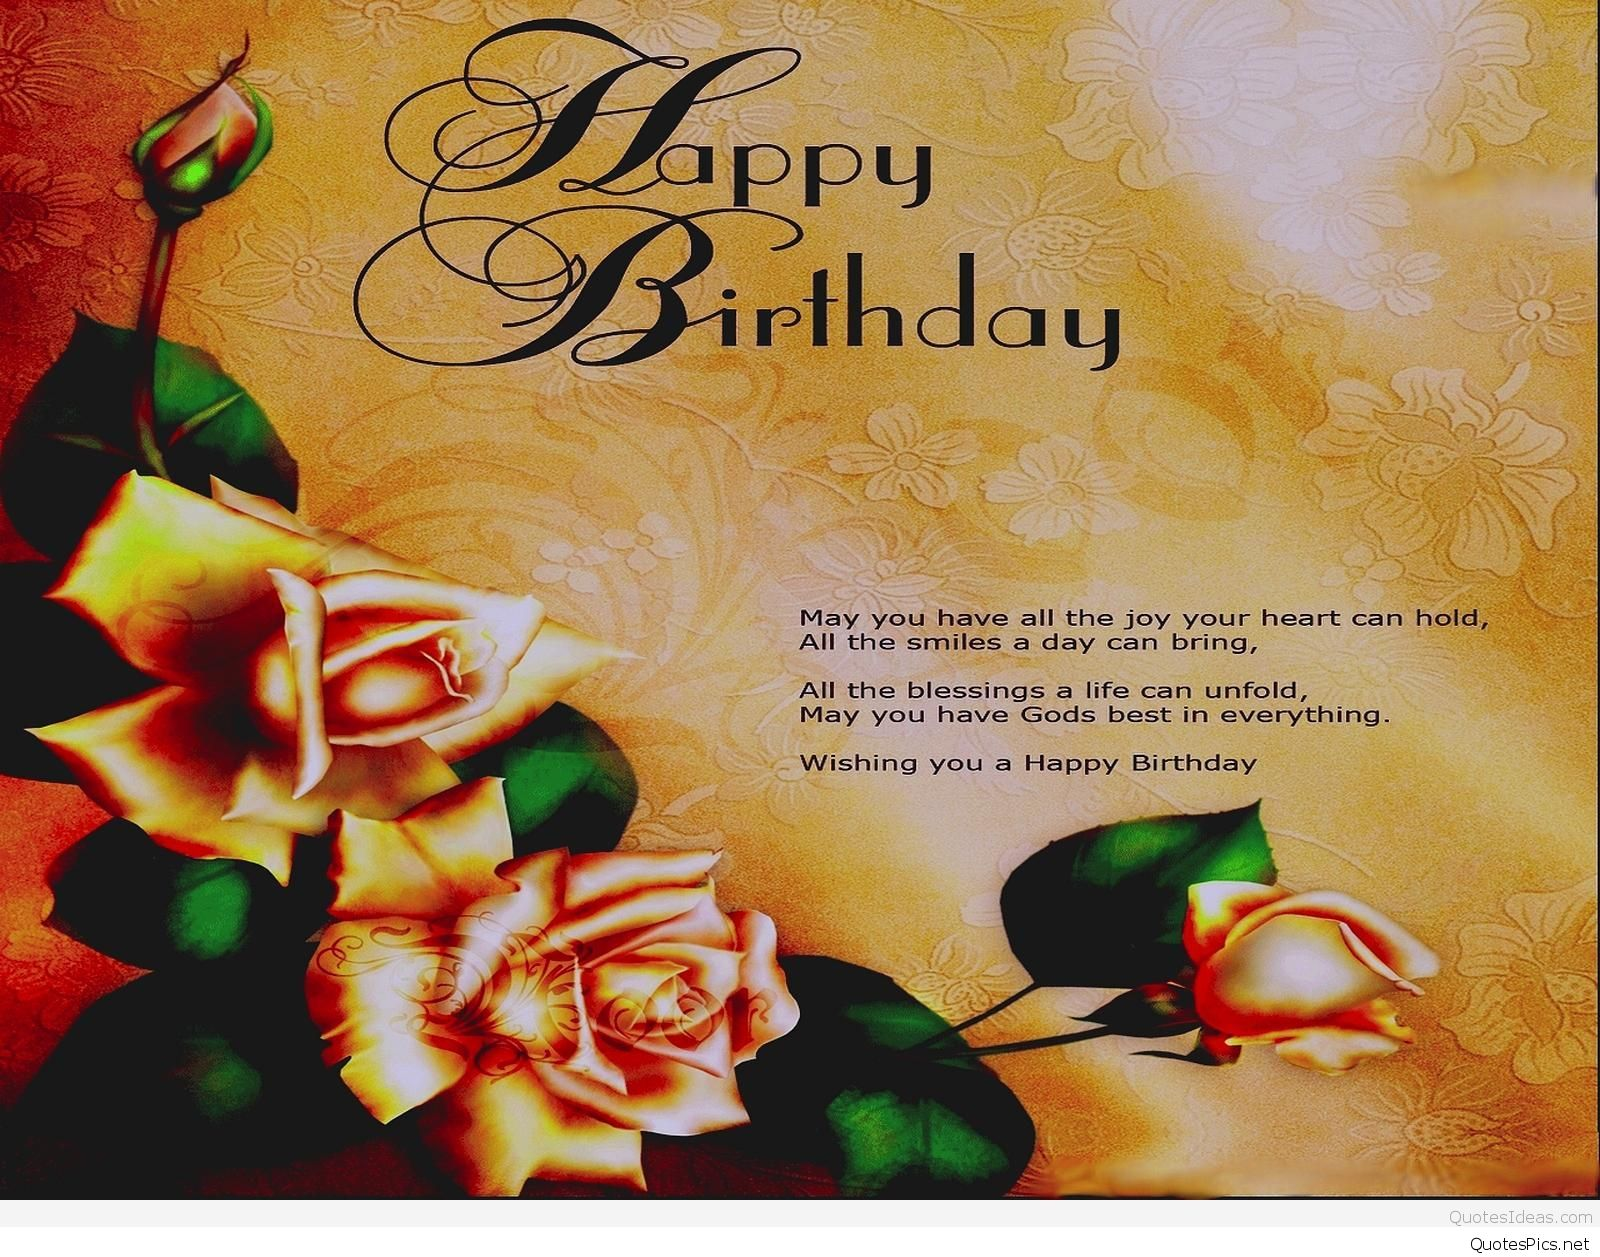 happy birthday quotes images hd ; happy-birthday-quotes-for-friends-cute-hd-wallpapers